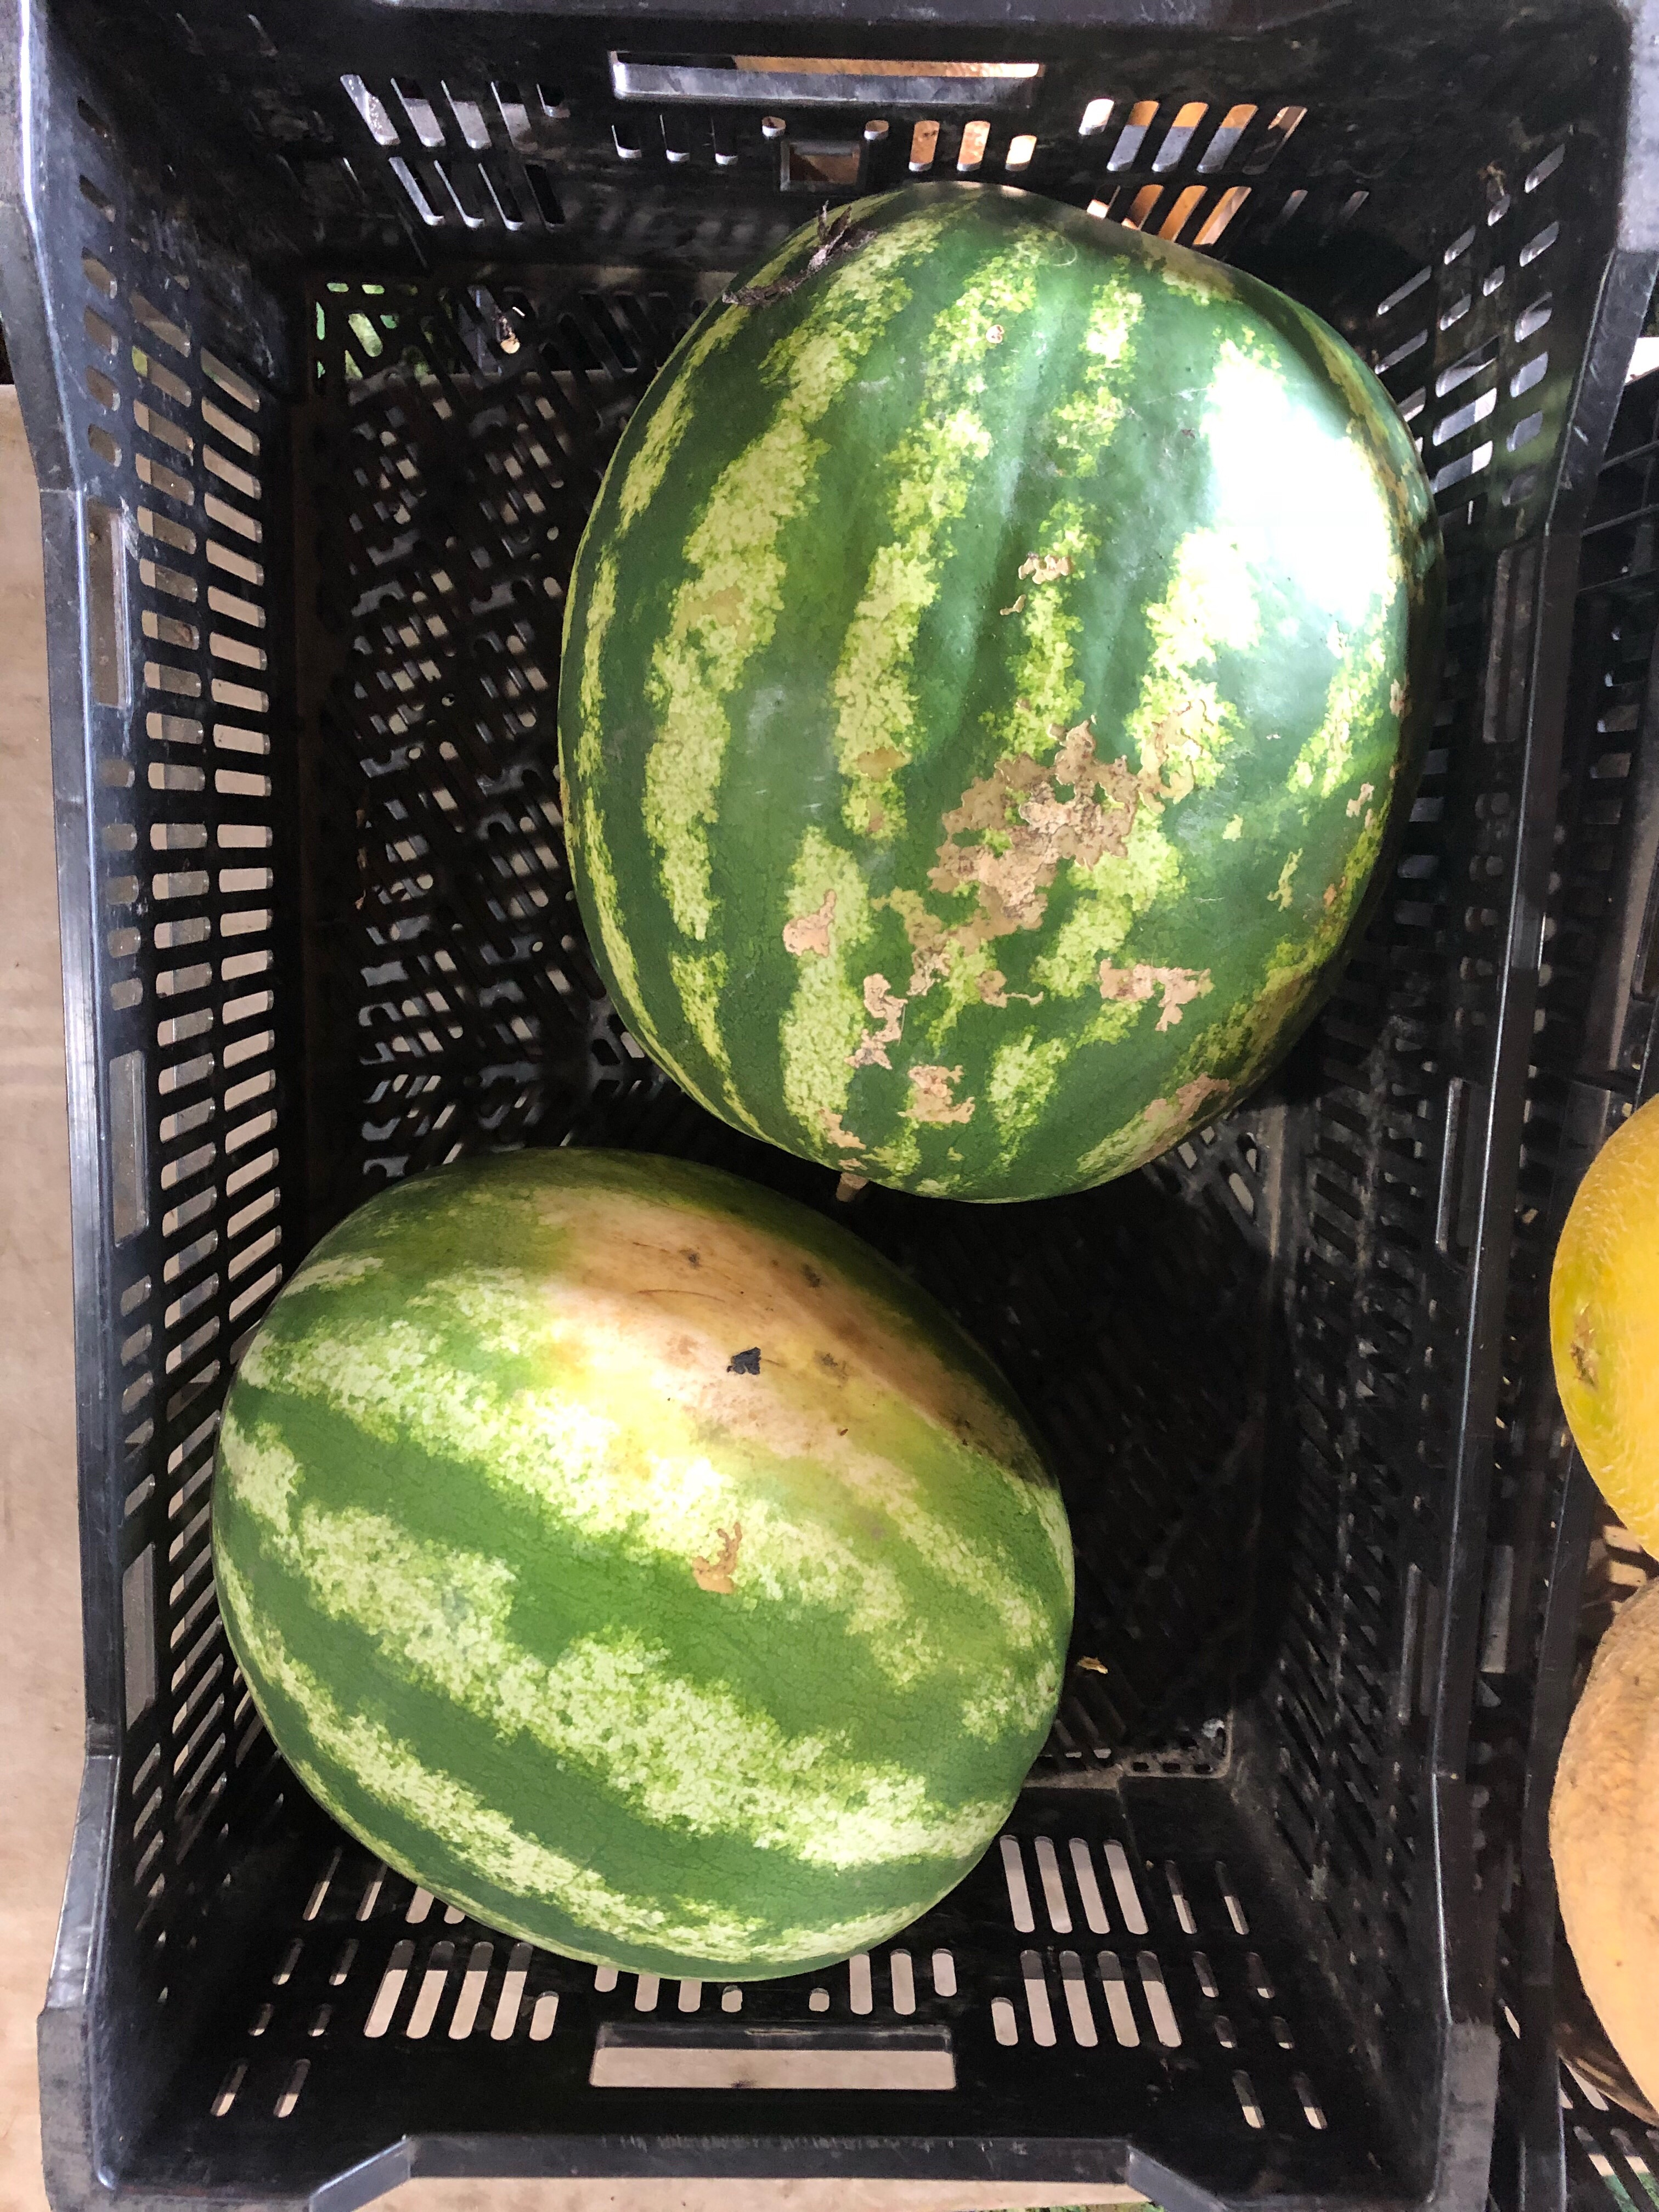 Beans & Greens Farm - Crops Watermelon